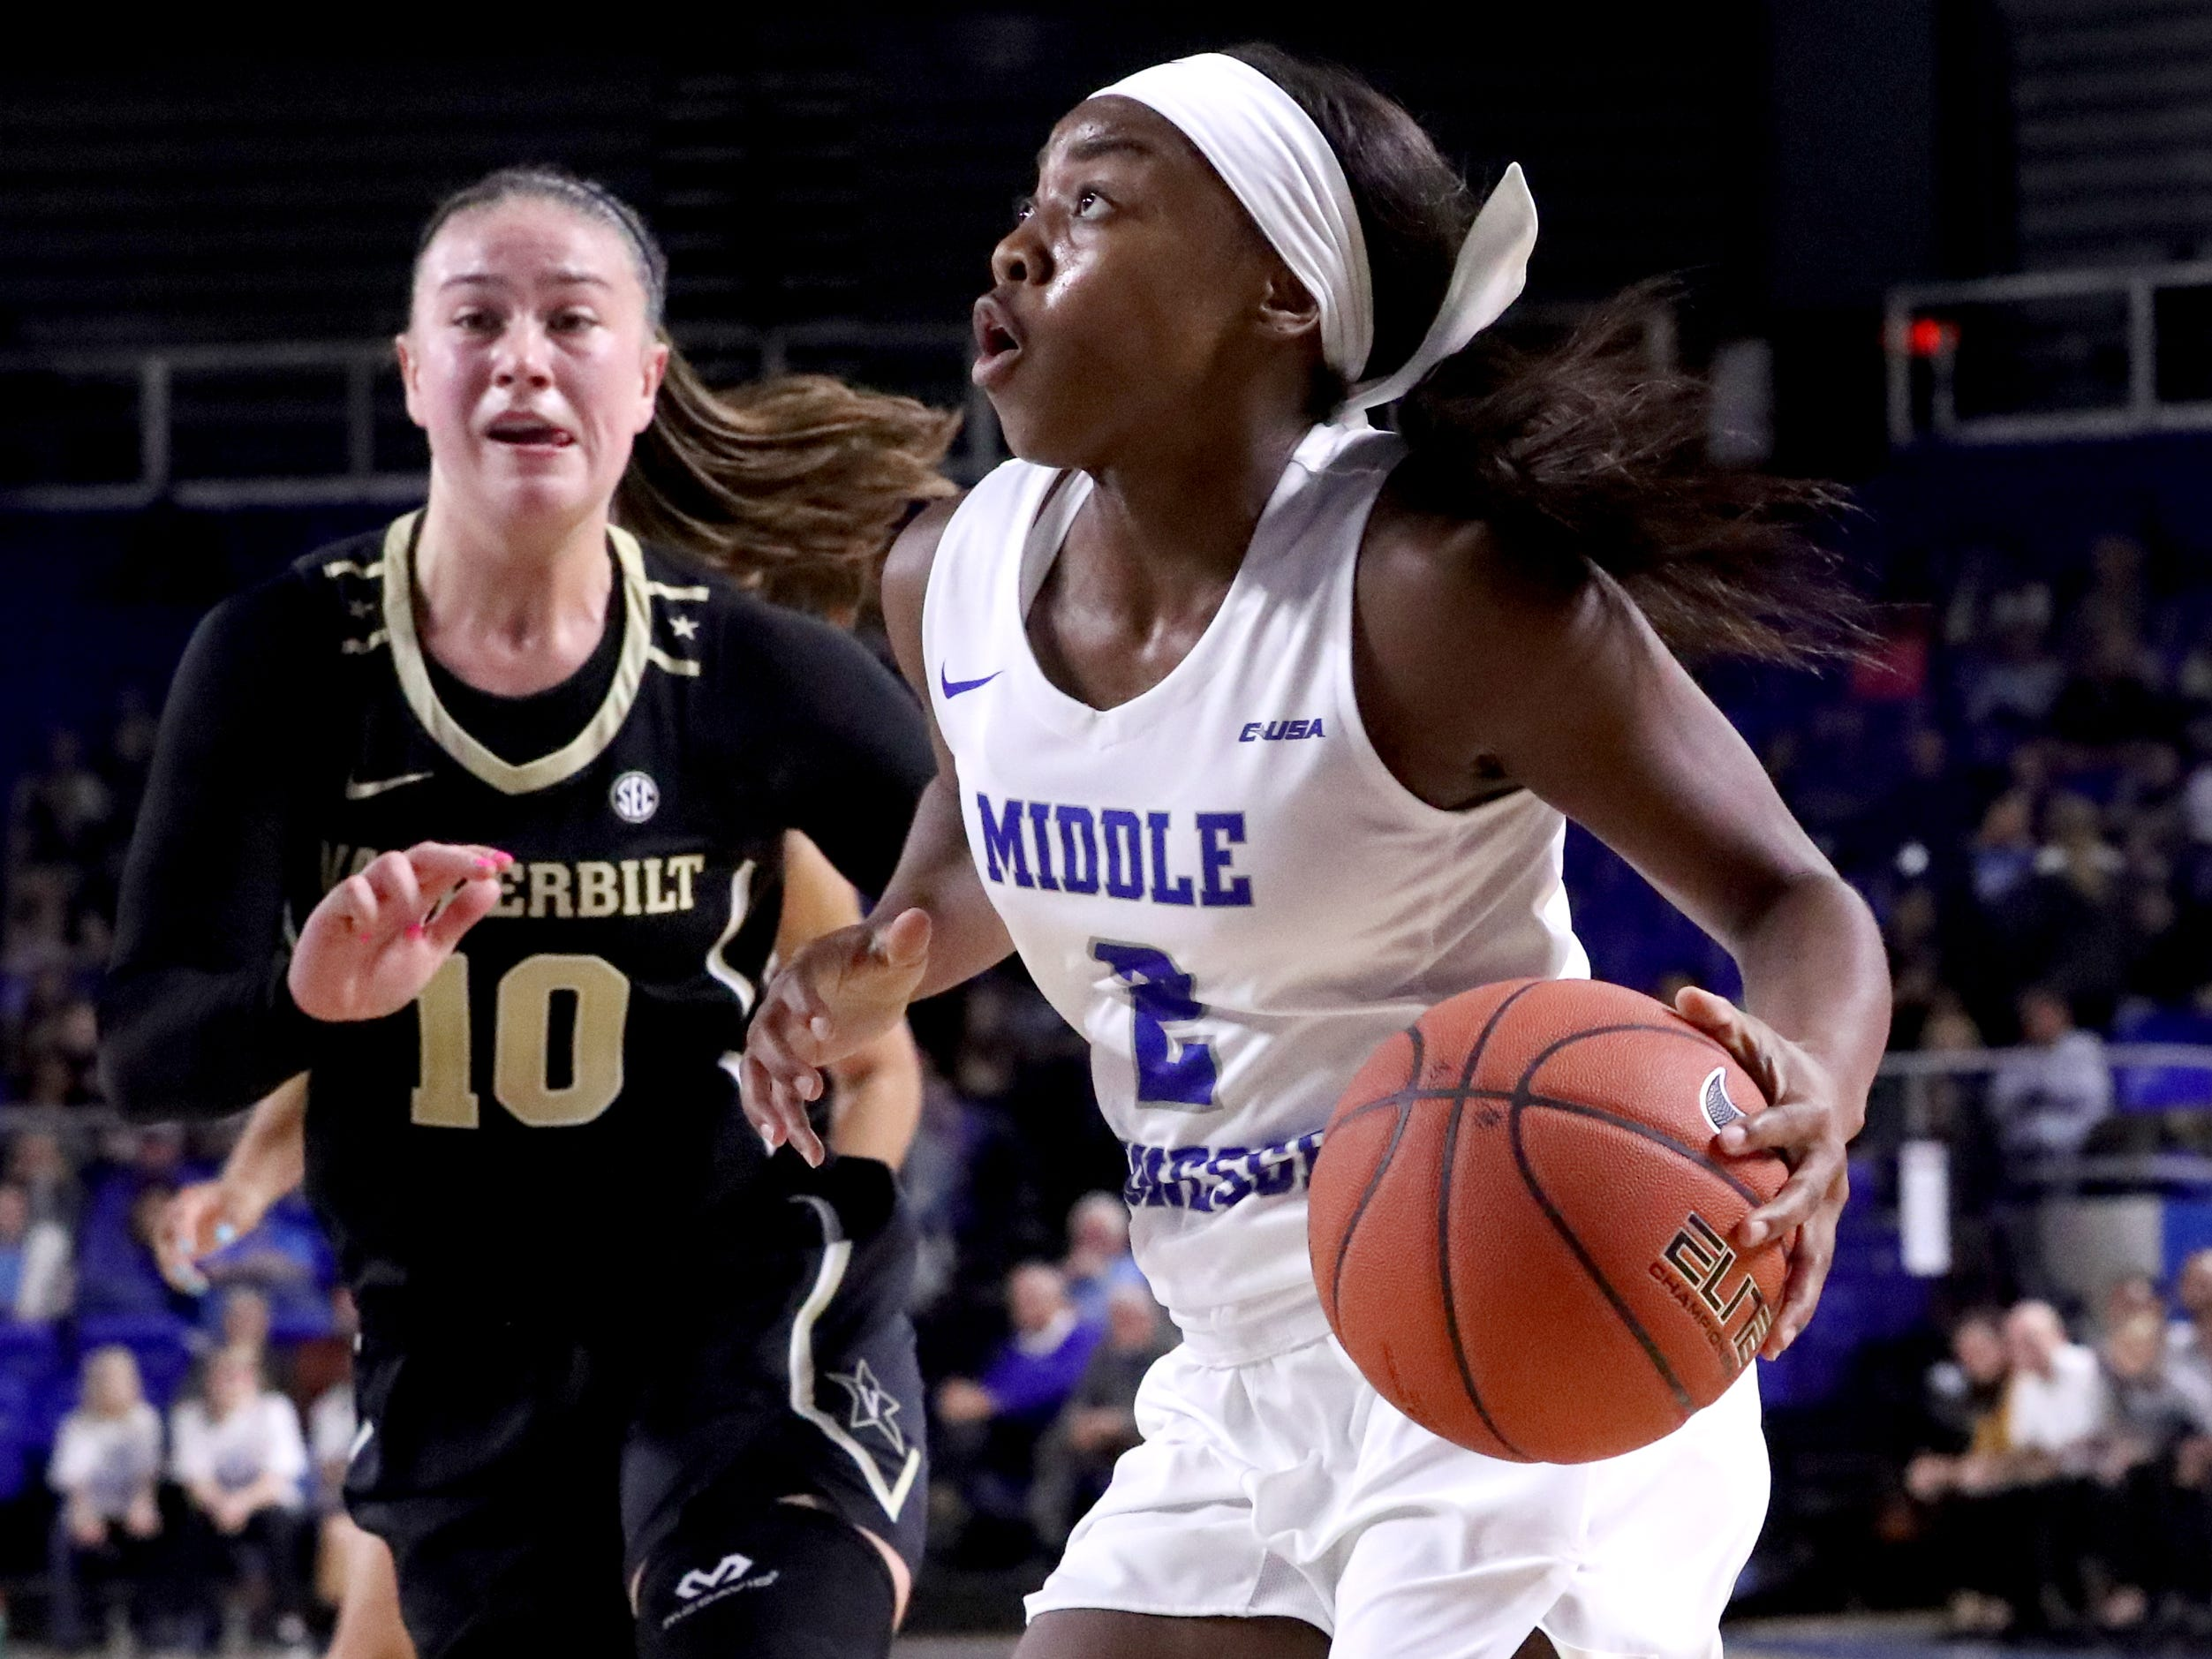 MTSU's Taylor Sutton (2) pushes toward the basket as Vanderbilt's Cierra Walker (10) comes up to defend her during MTSU women's home opening game at MTSU on Friday, Nov. 8, 2018.